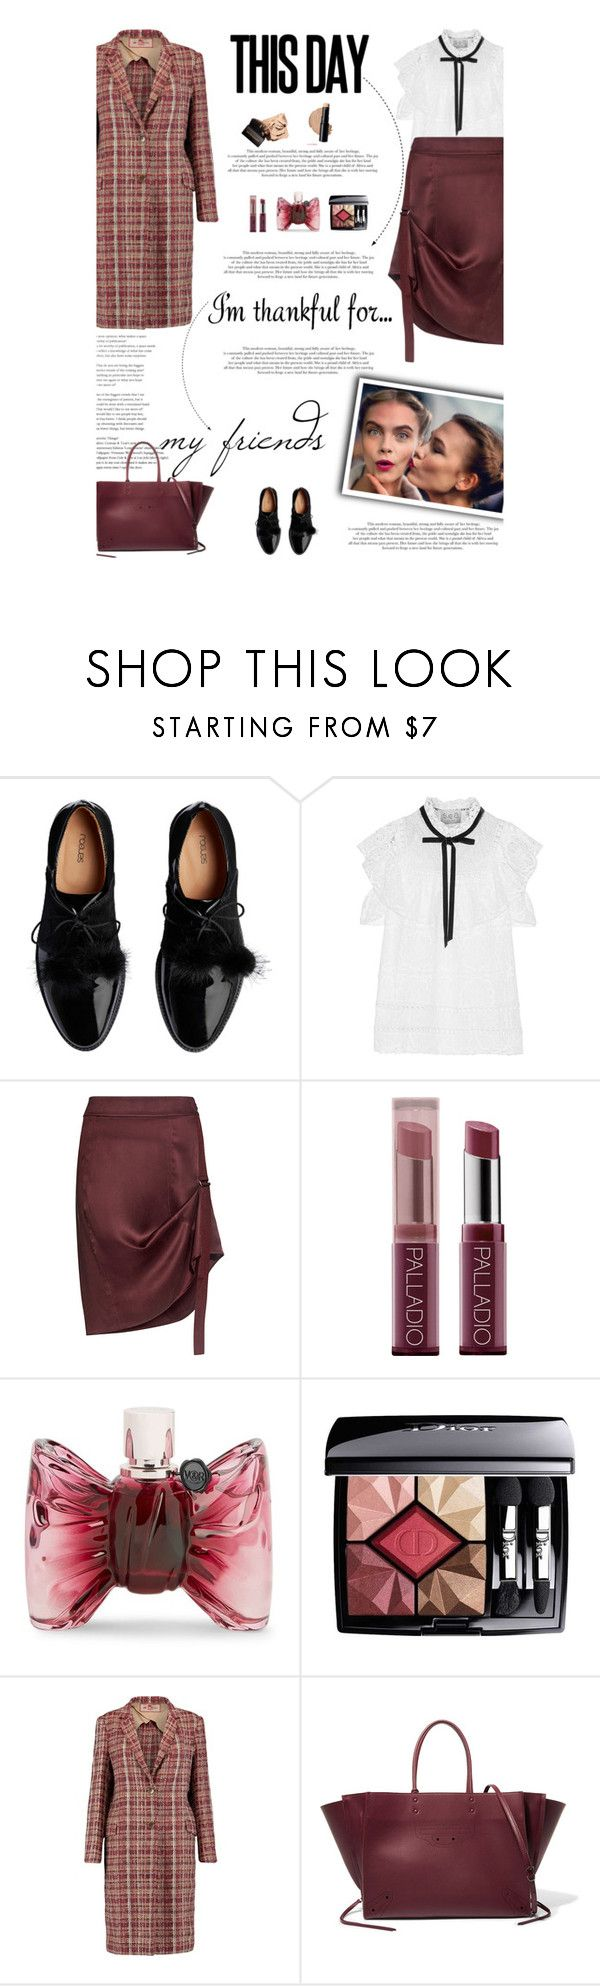 """I'm Thankful For..."" by amimcqueen ❤ liked on Polyvore featuring Sea, New York, Public School, Viktor & Rolf, Christian Dior, Etro and Balenciaga"